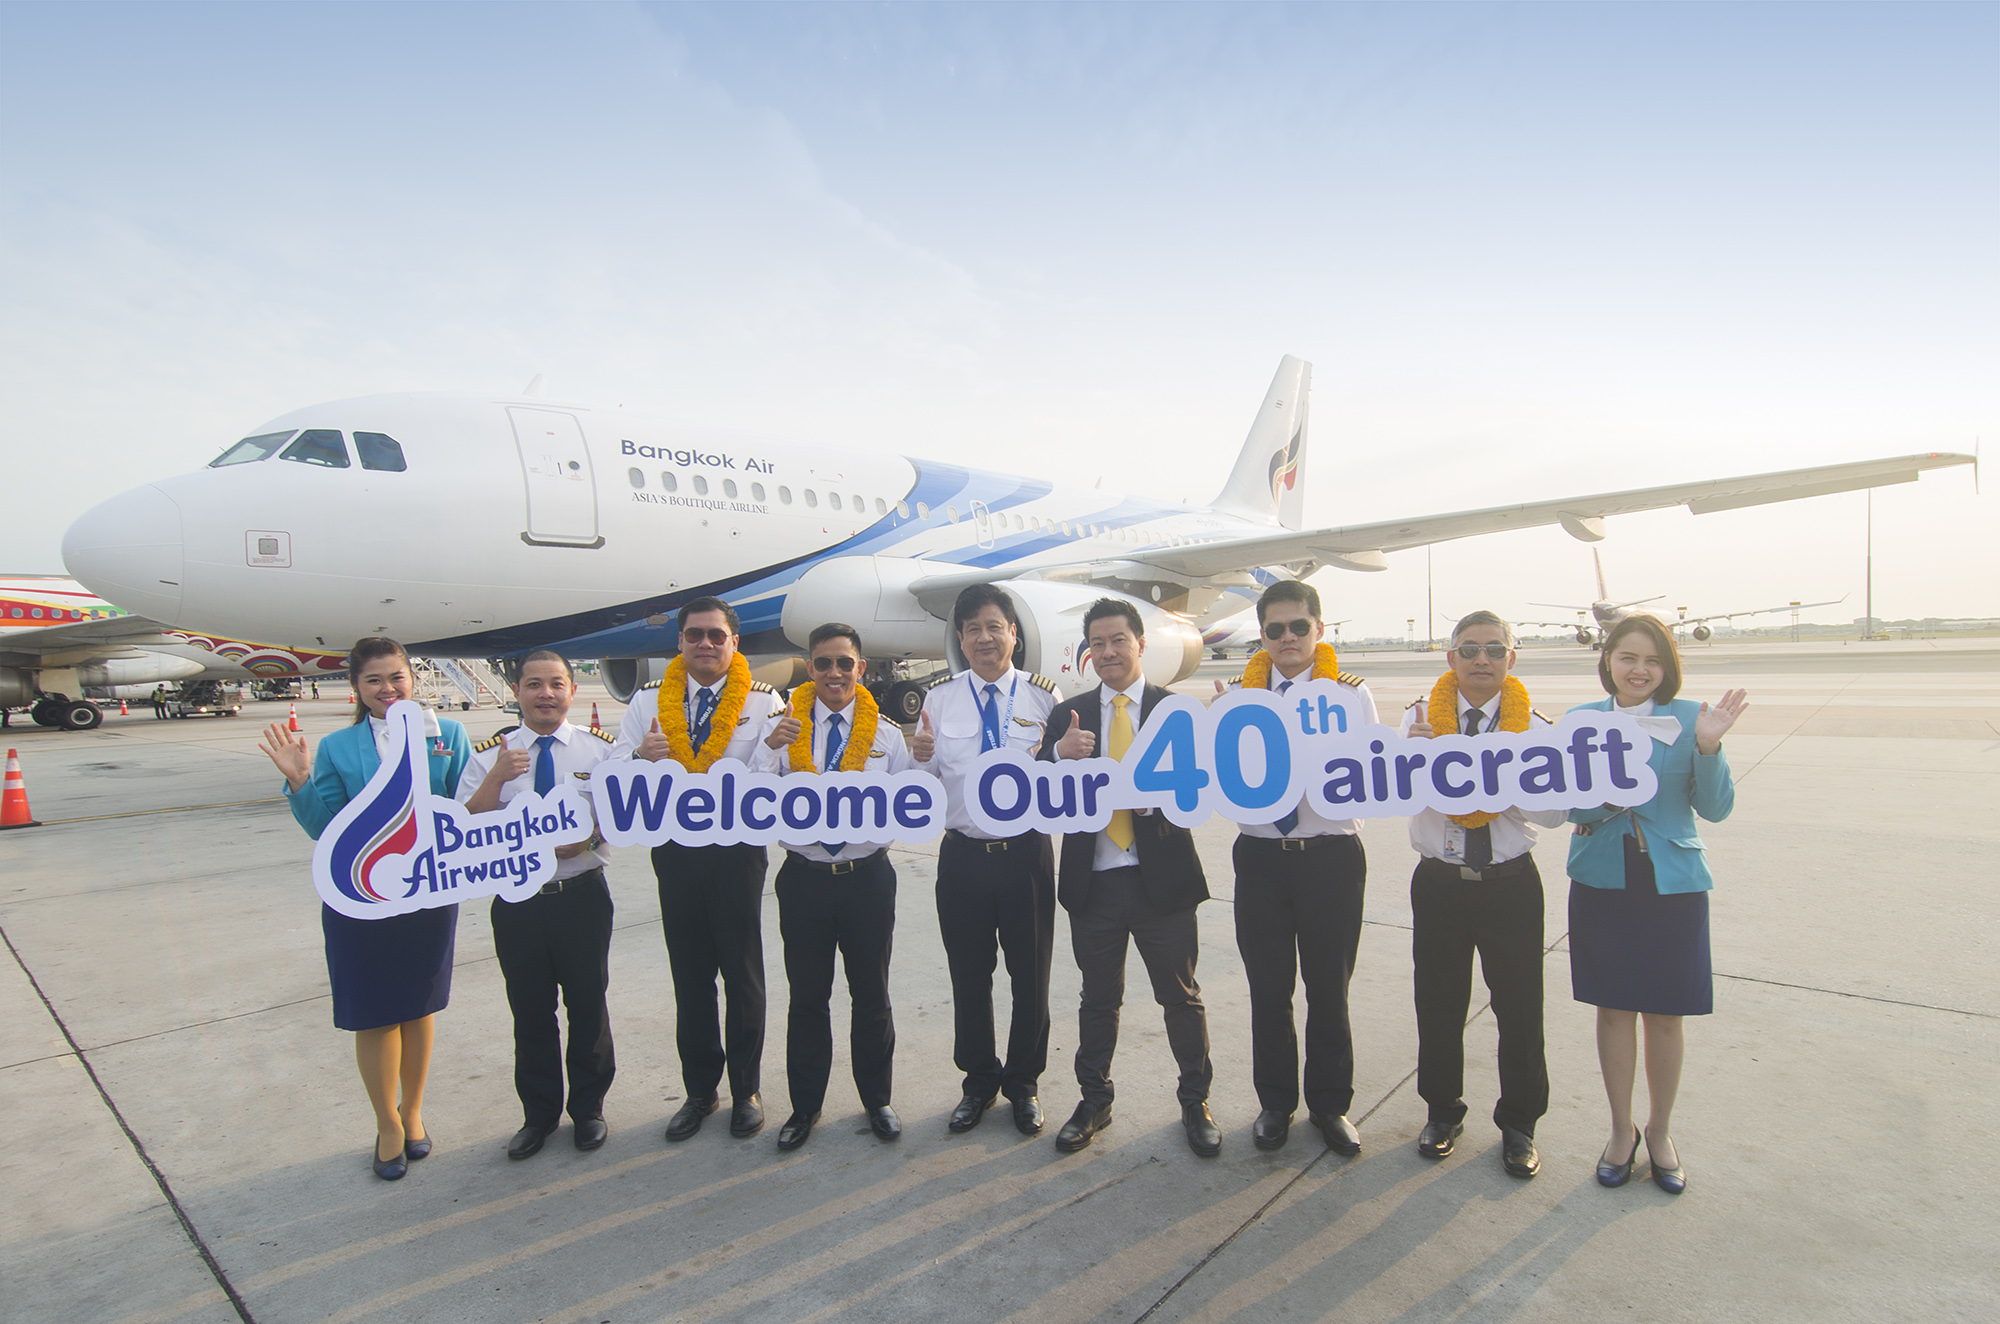 Bangkok Airways welcomes 40th aircraft to its fleet